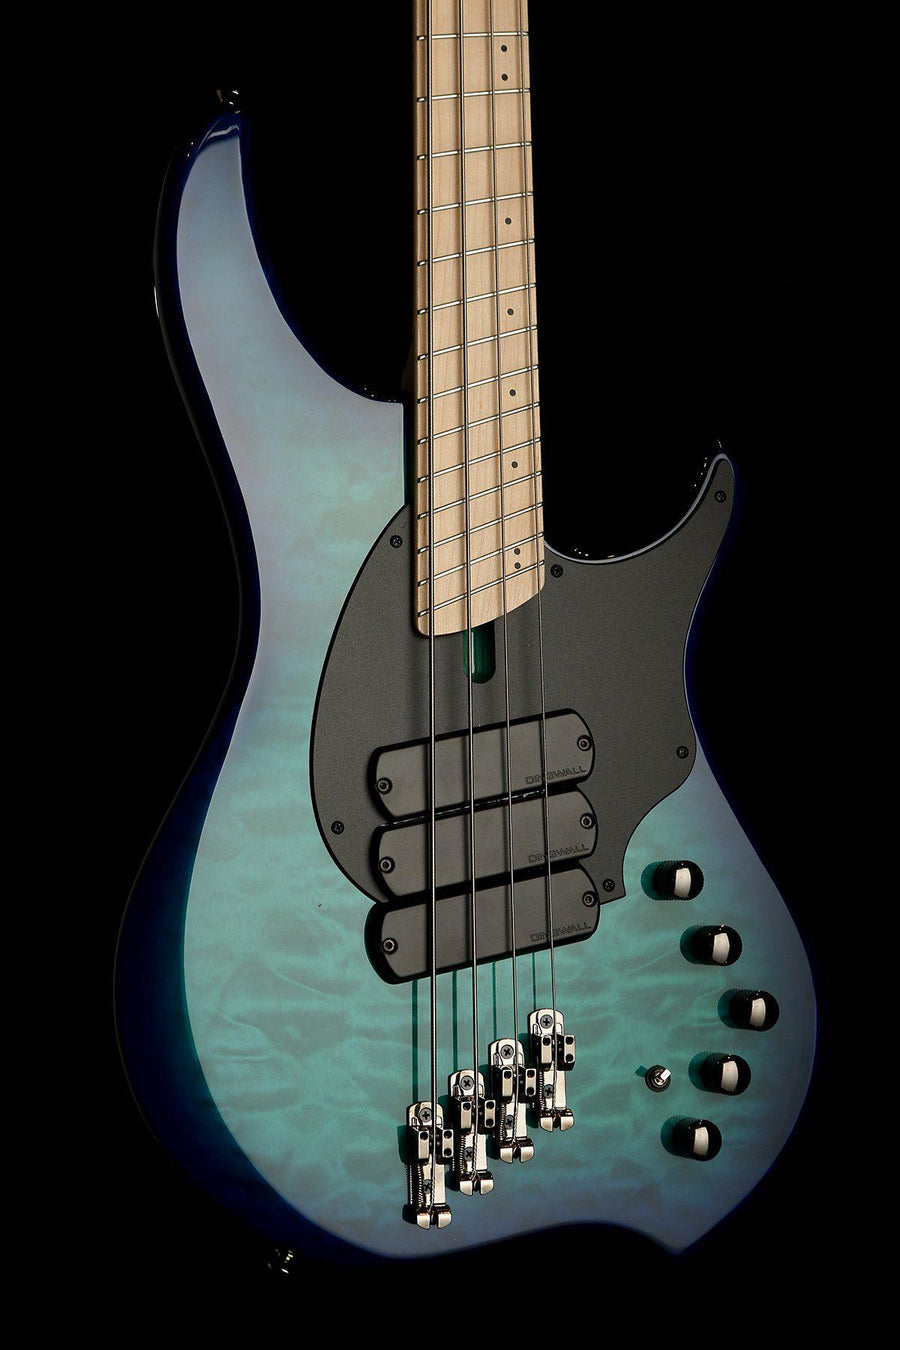 Bass Guitars - 2019 Dingwall Combustion 4 Quilt Top 3X Whalepool Burst